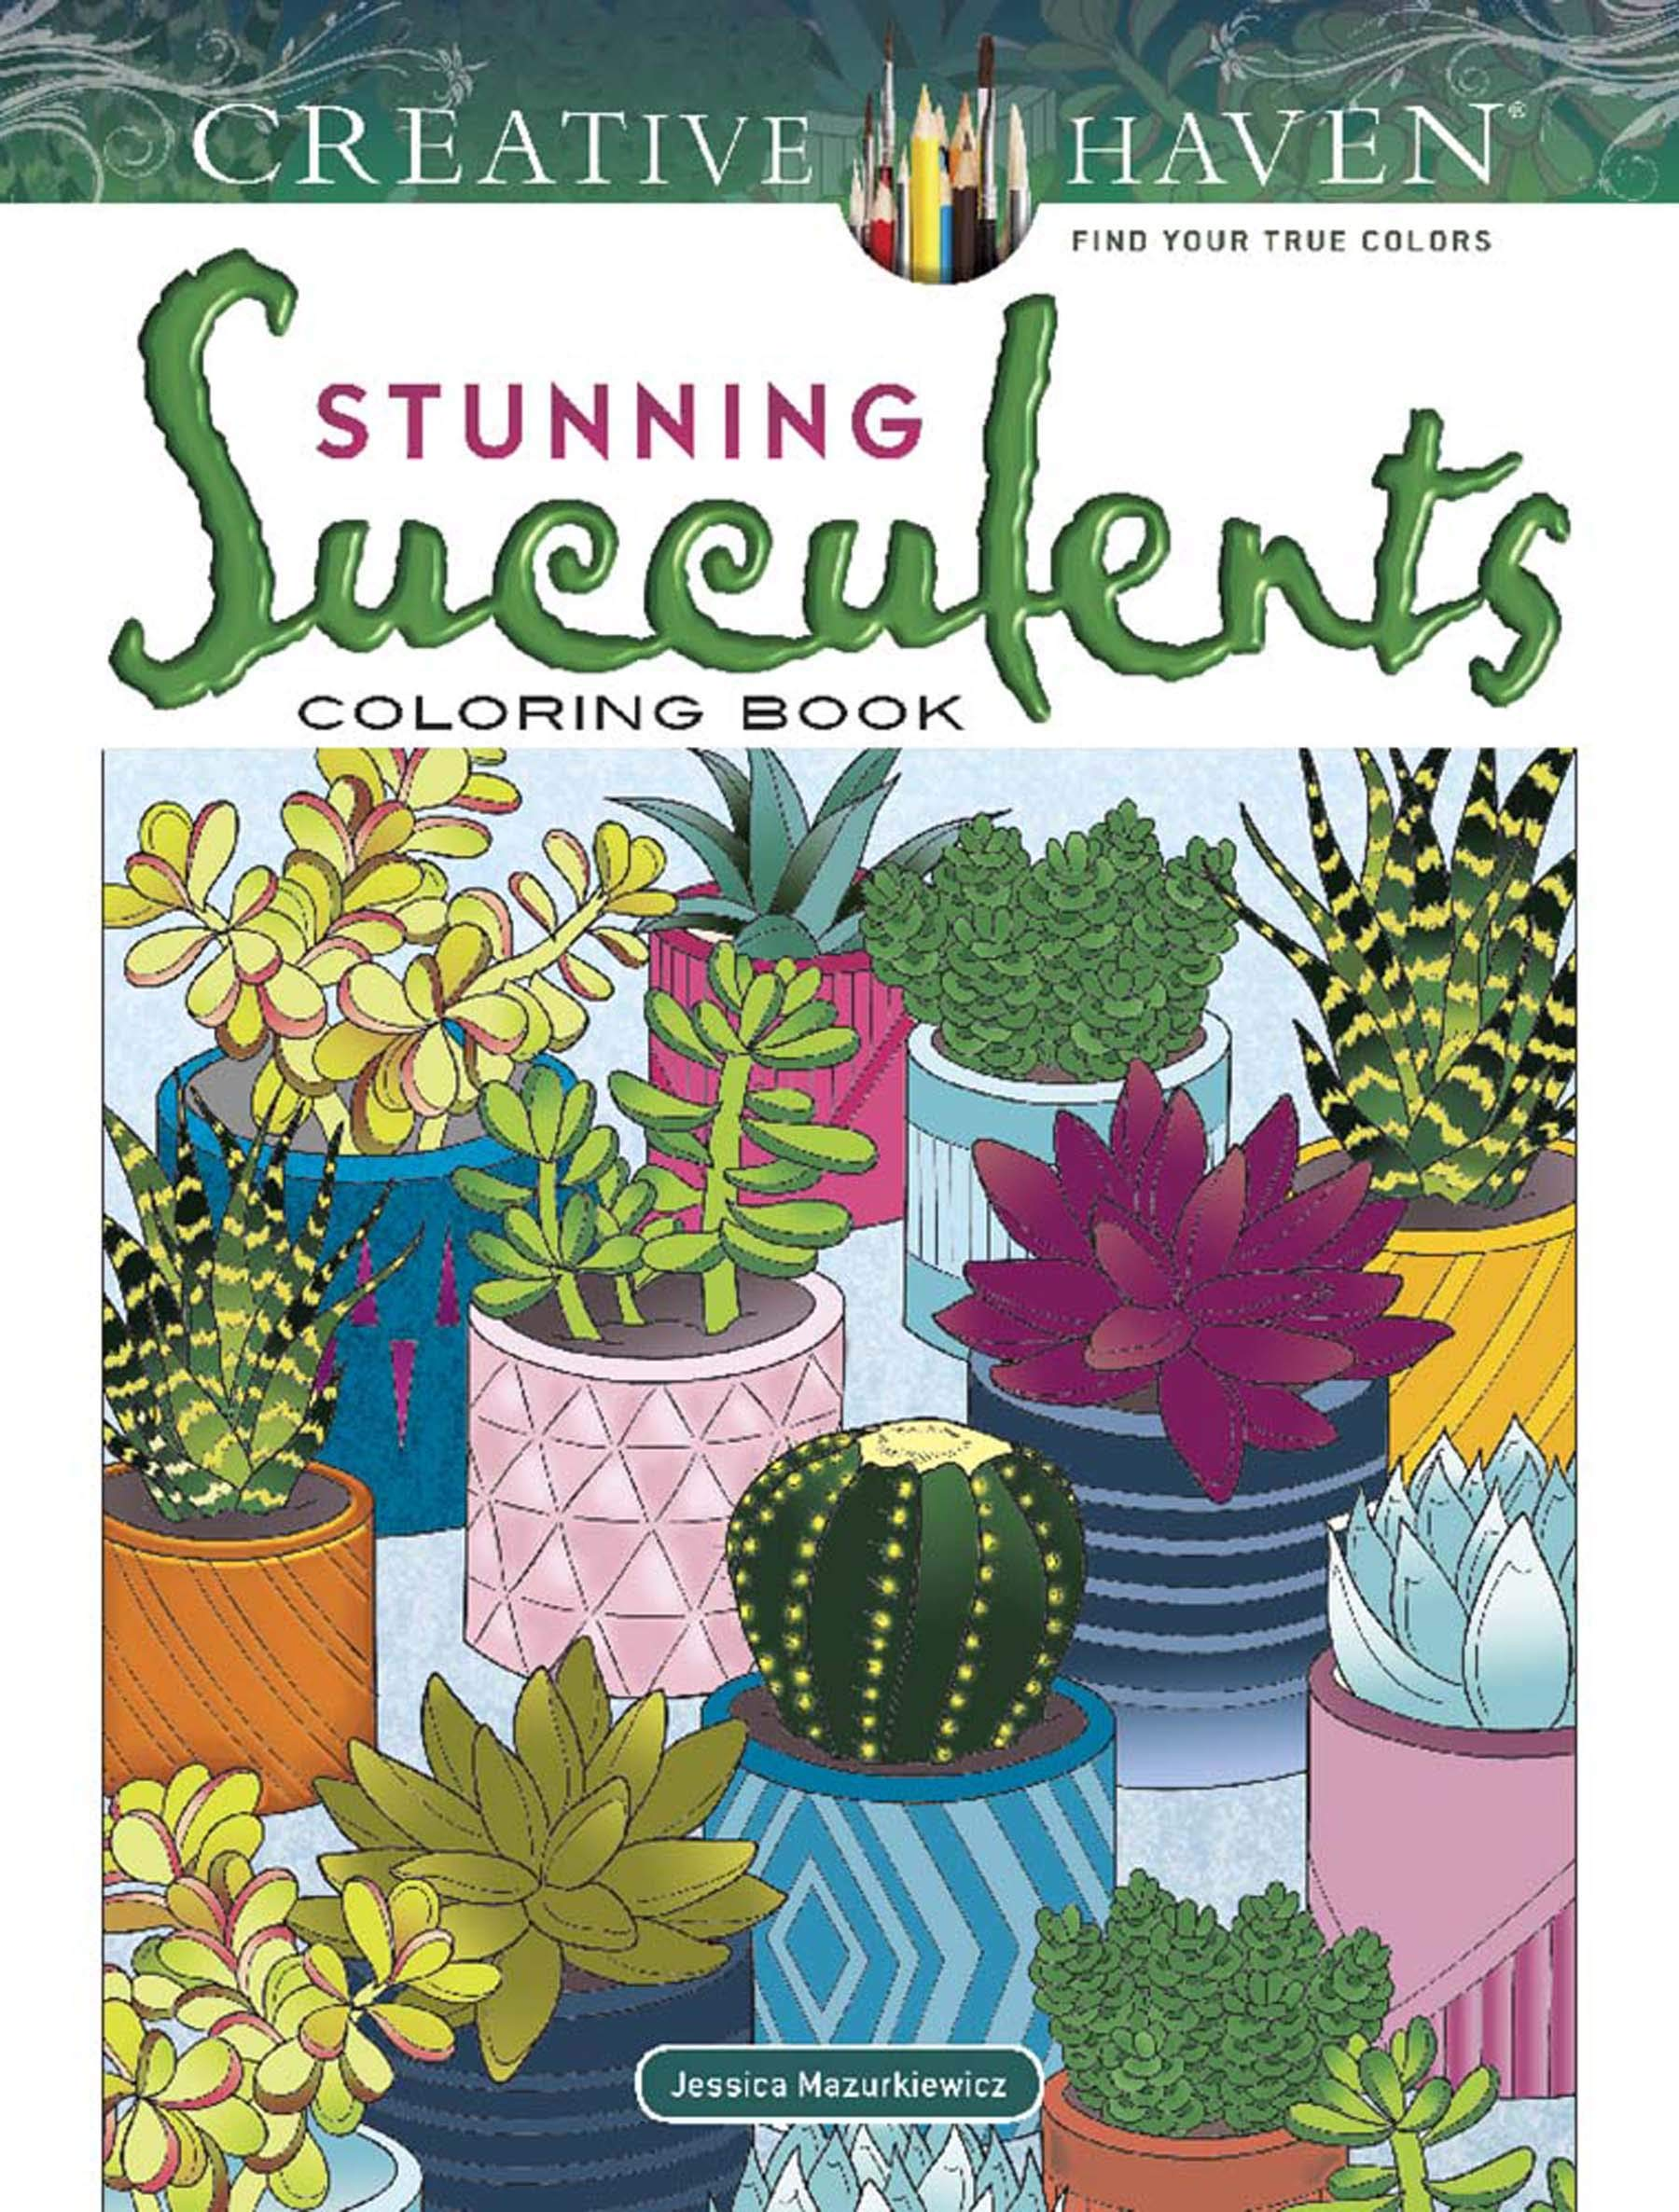 creative haven stunning succulents coloring book creative haven coloring books